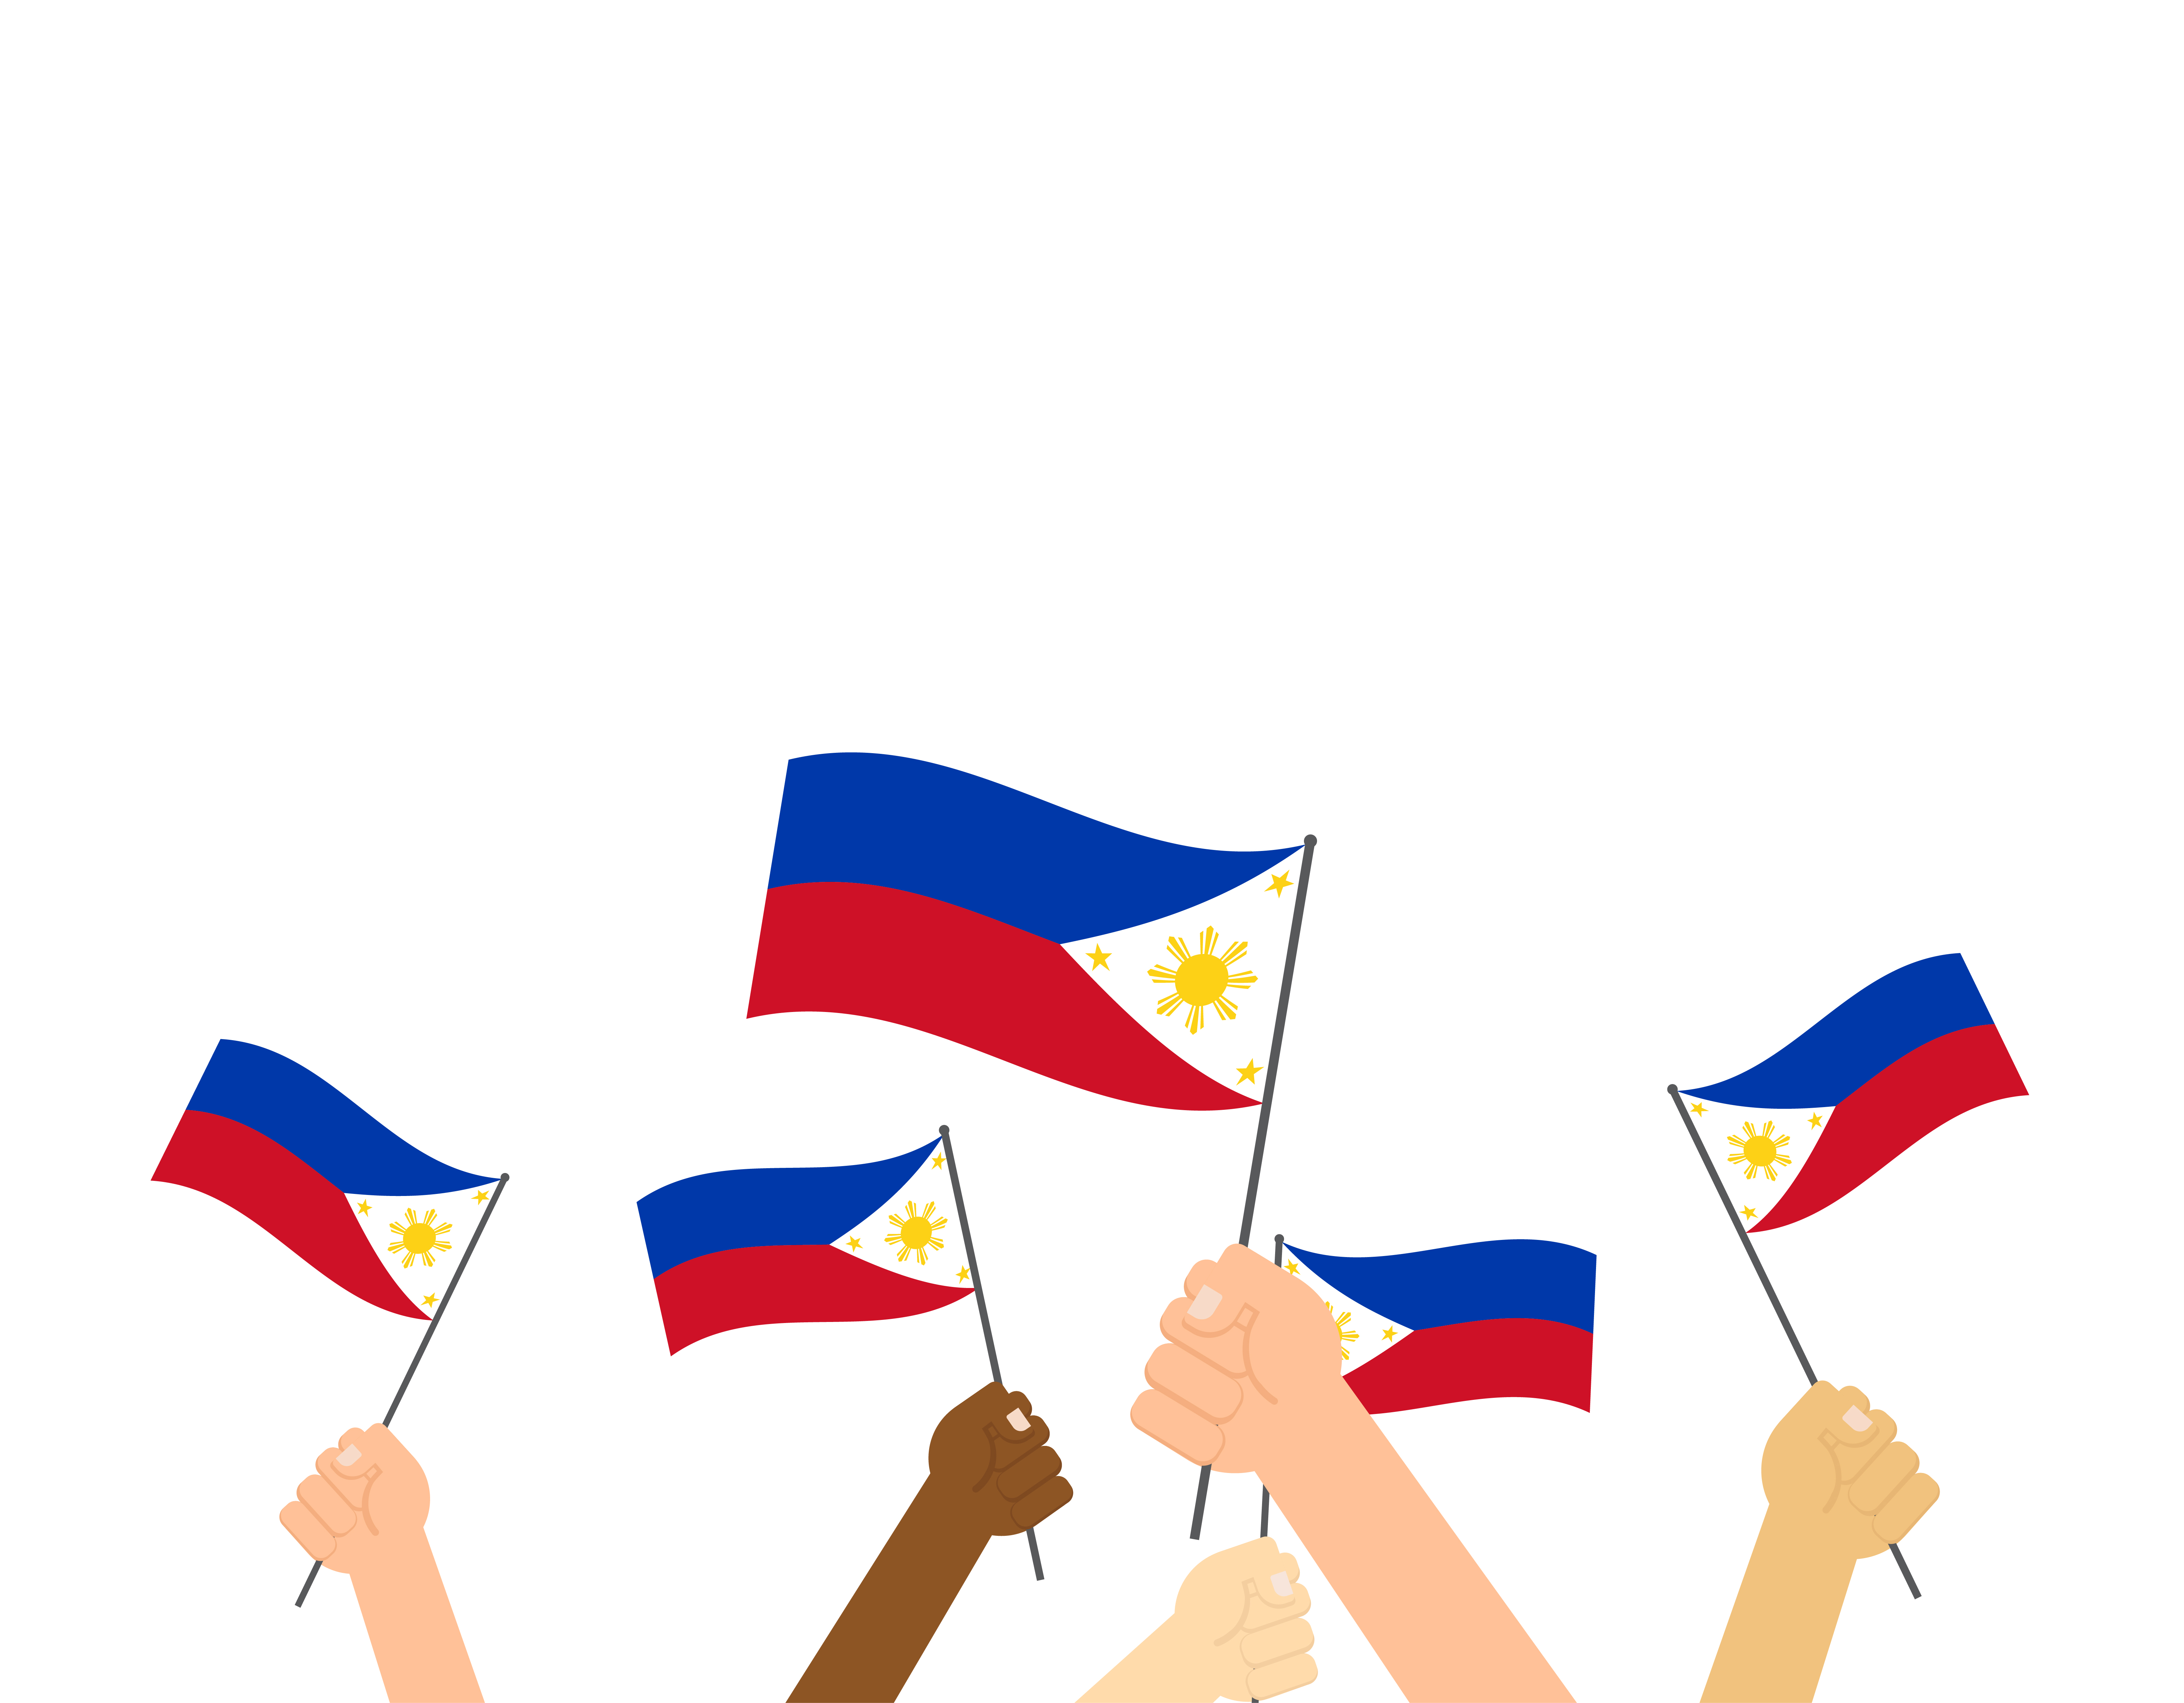 Vector Illustration Hands Holding Philippines Flags On White Background 583168 Download Free Vectors Clipart Graphics Vector Art Browse millions of popular flag wallpapers and ringtones on zedge and download this pakistan flag transparent with paint brush, pakistan flag, pakistan flag vector, pakistan flag waving png clipart image with. vecteezy